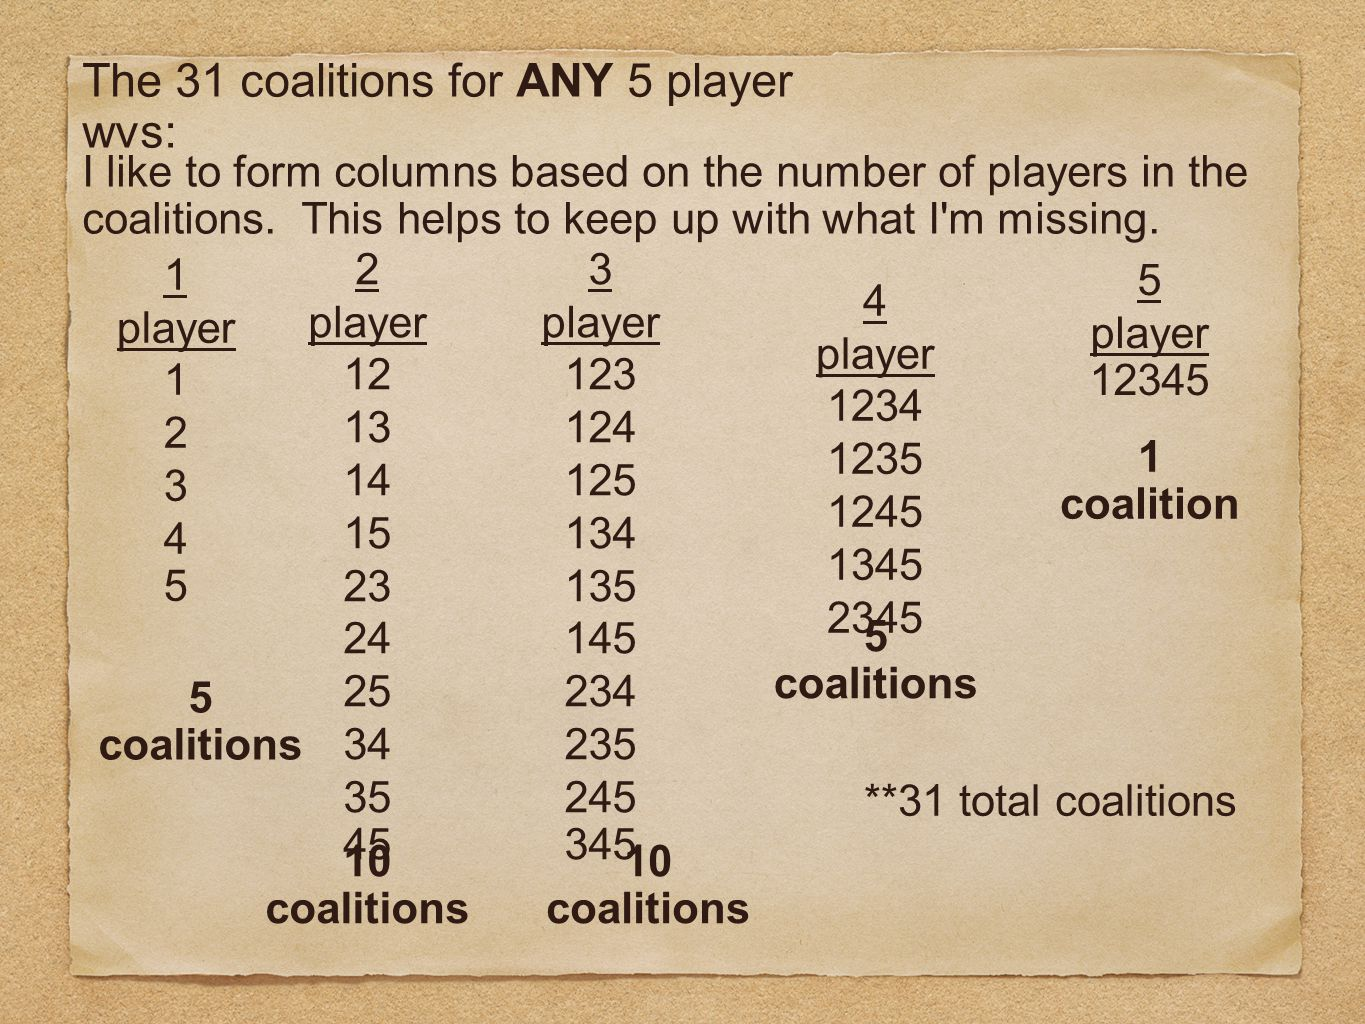 The 31 coalitions for ANY 5 player wvs: